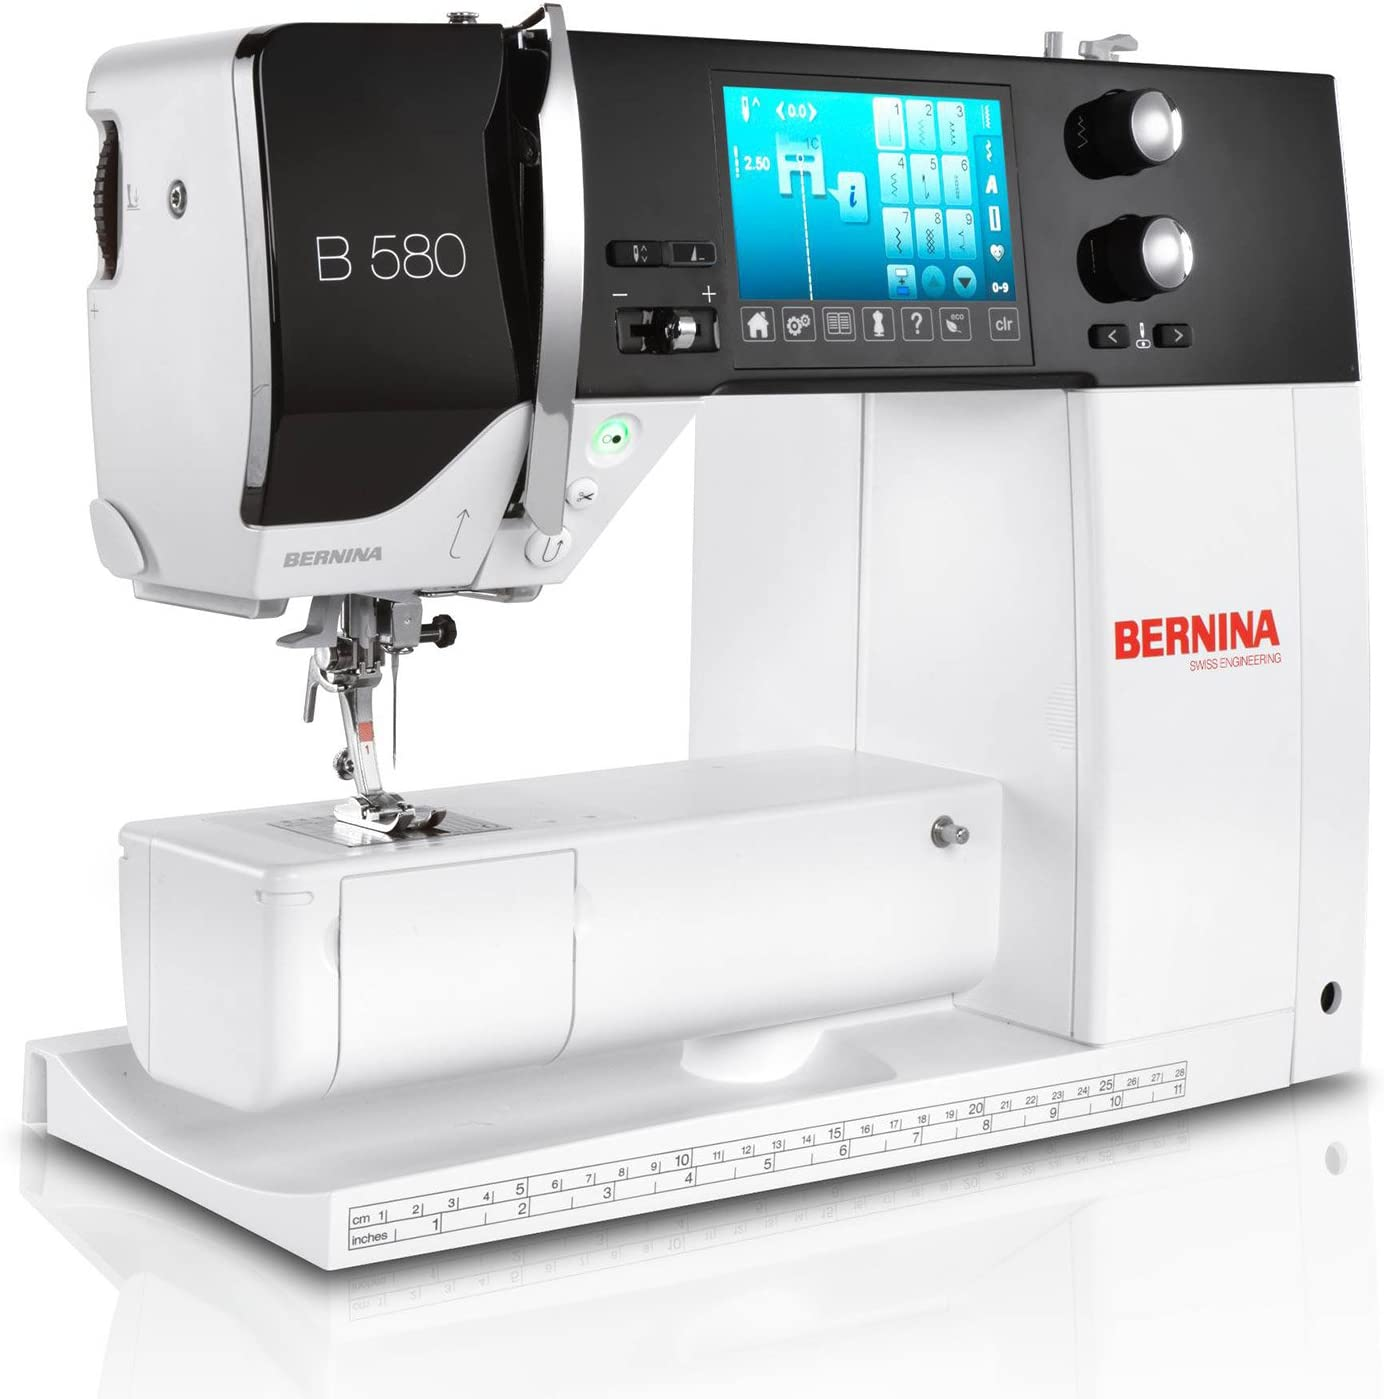 maquina coser y bordar Bernina 580 con modulo de bordado: Amazon ...